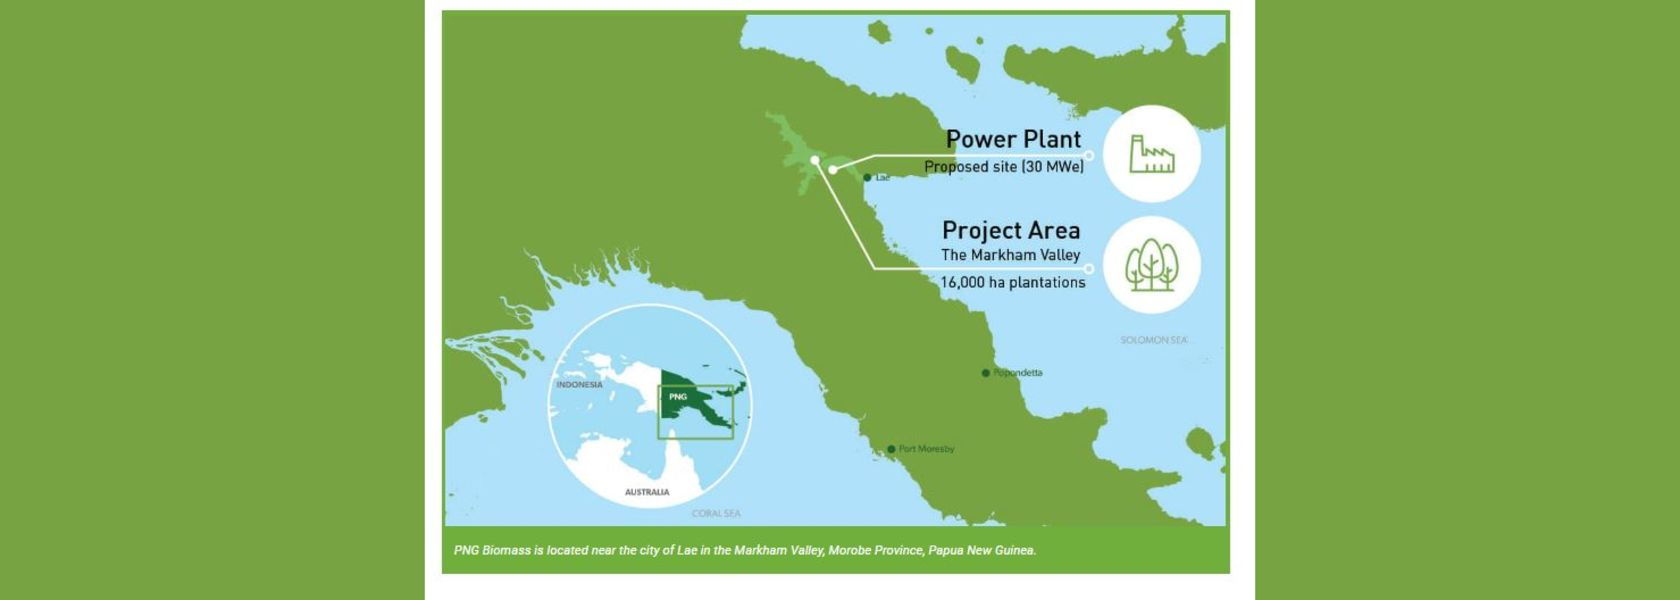 PNG Biomass to tell its story.